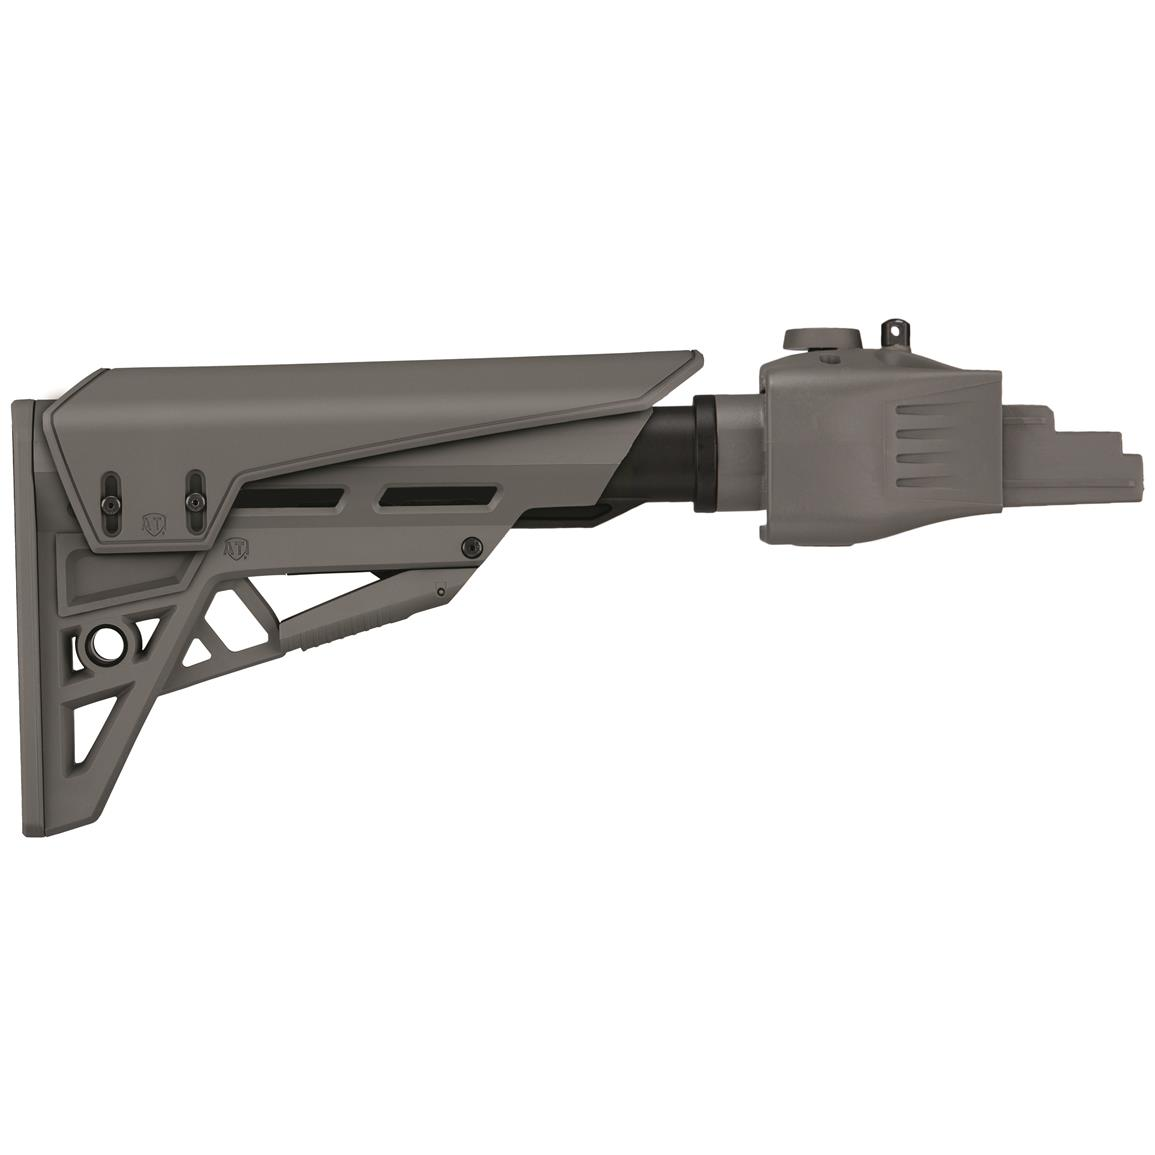 ATI TactLite StrikeForce R22 Folding Rifle Stock For Ruger 10/22 Rifles, Gray